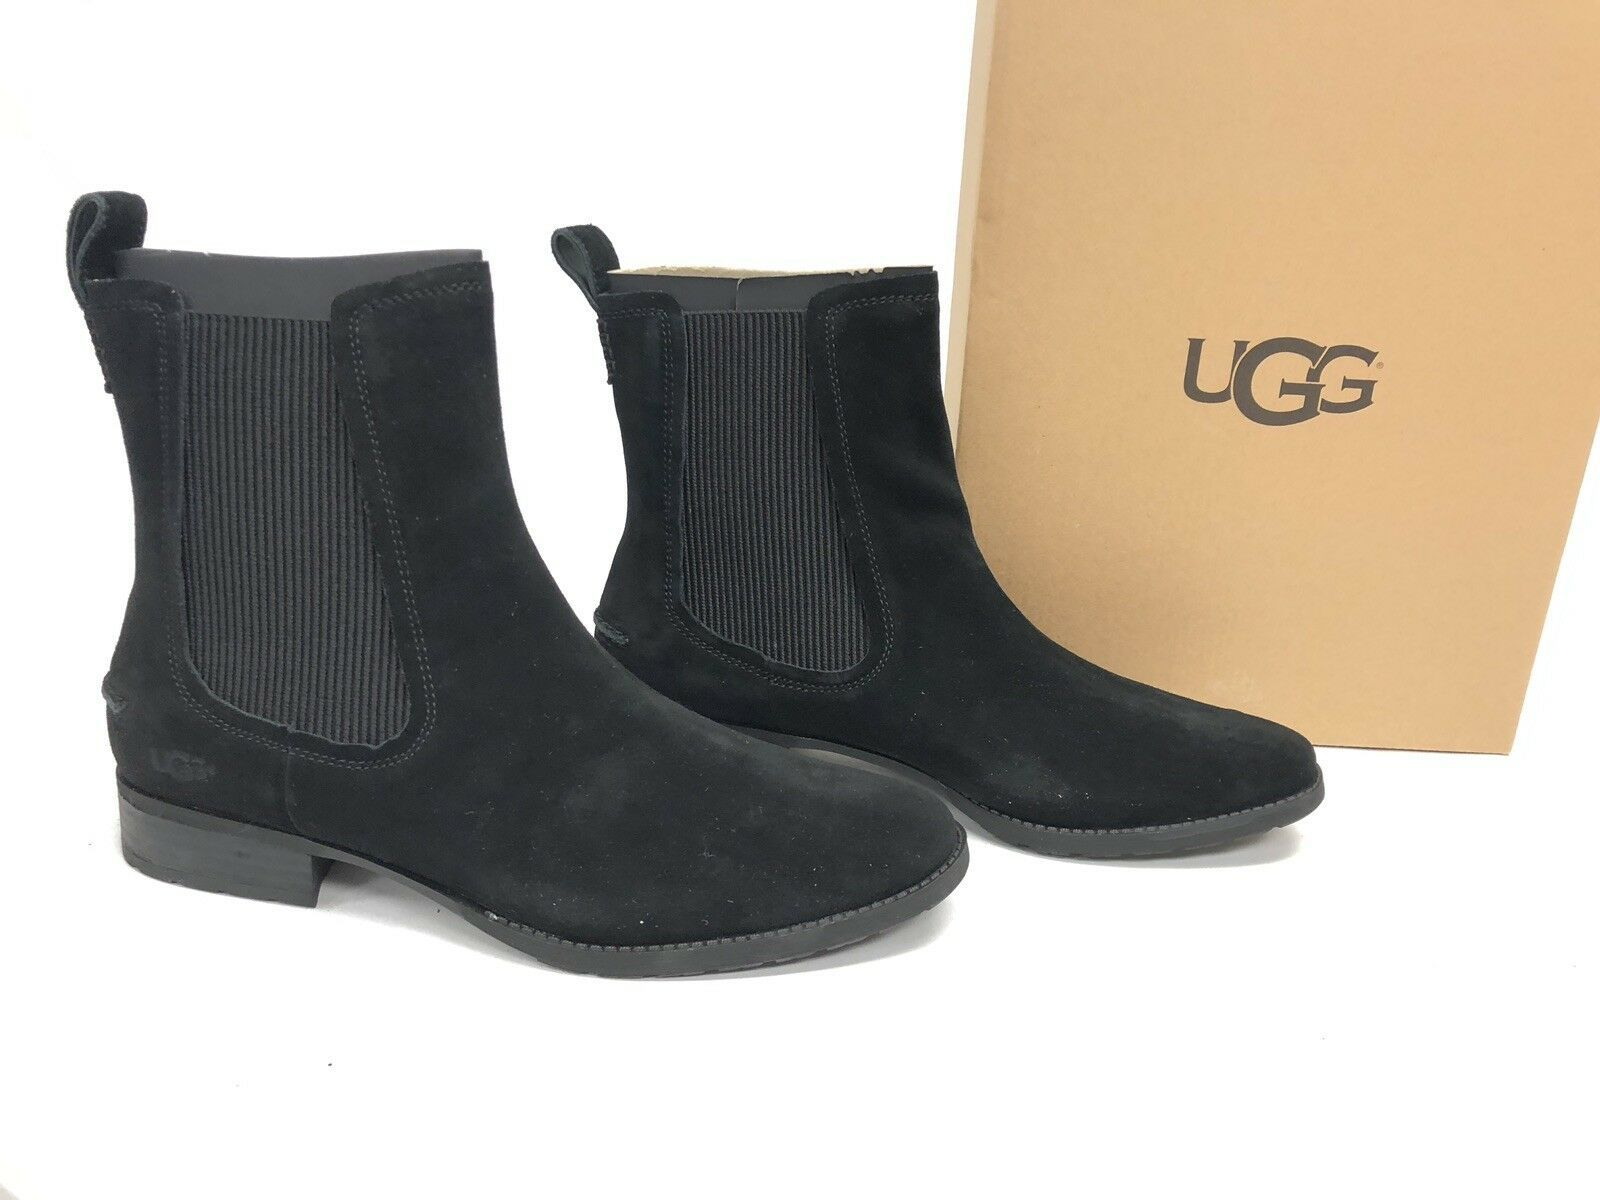 291bd393095 UGG Australia Women's Hillhurst Boot 1095393 and 50 similar items